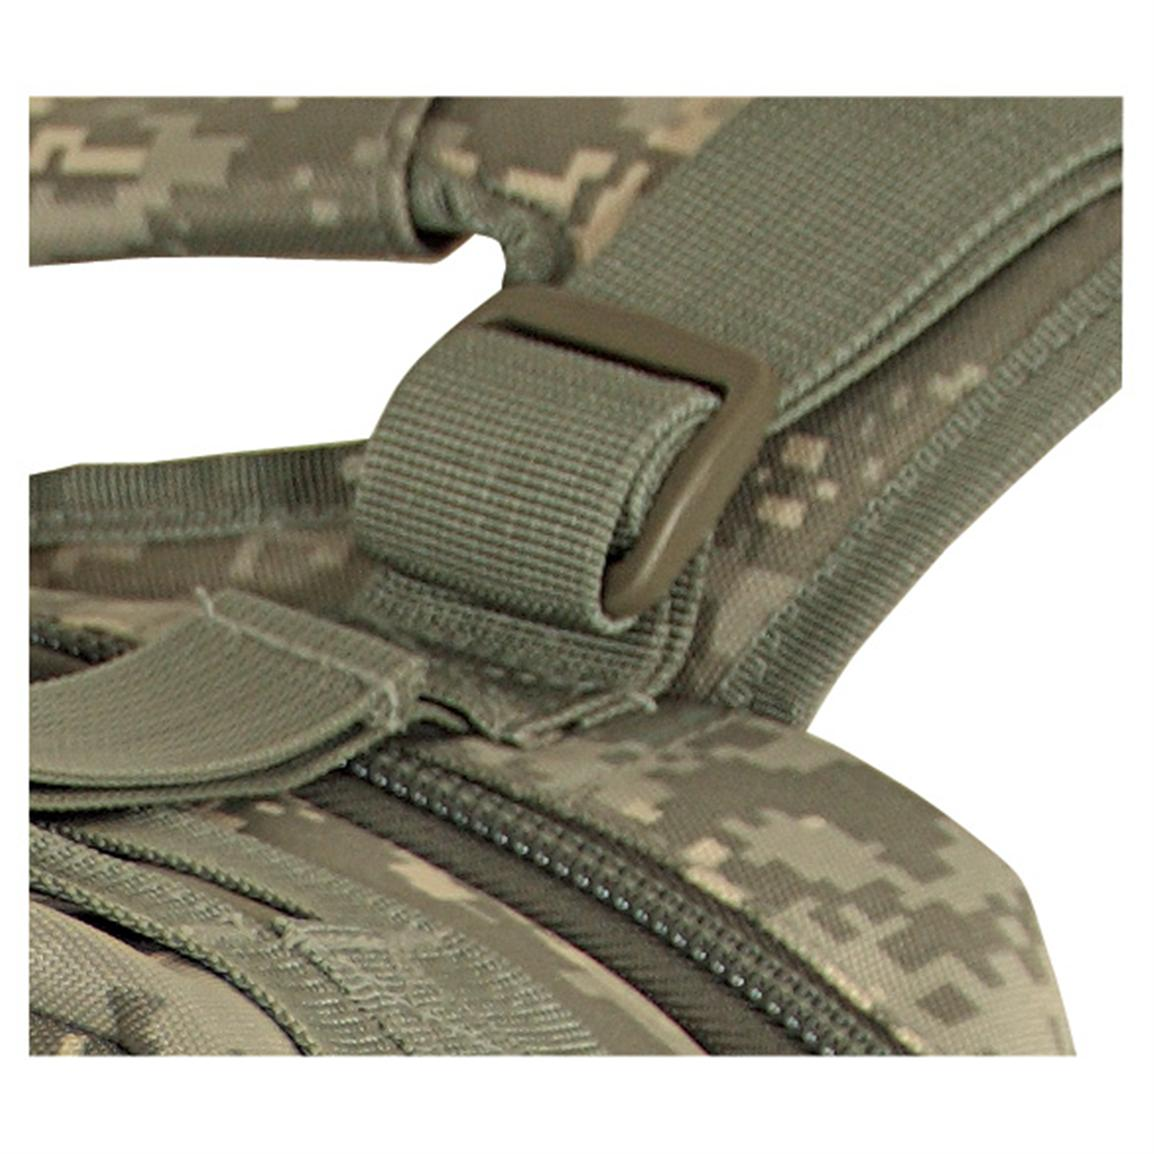 Includes additional straps so you can ad your Voodoo Tactical Drag Bag to the pack